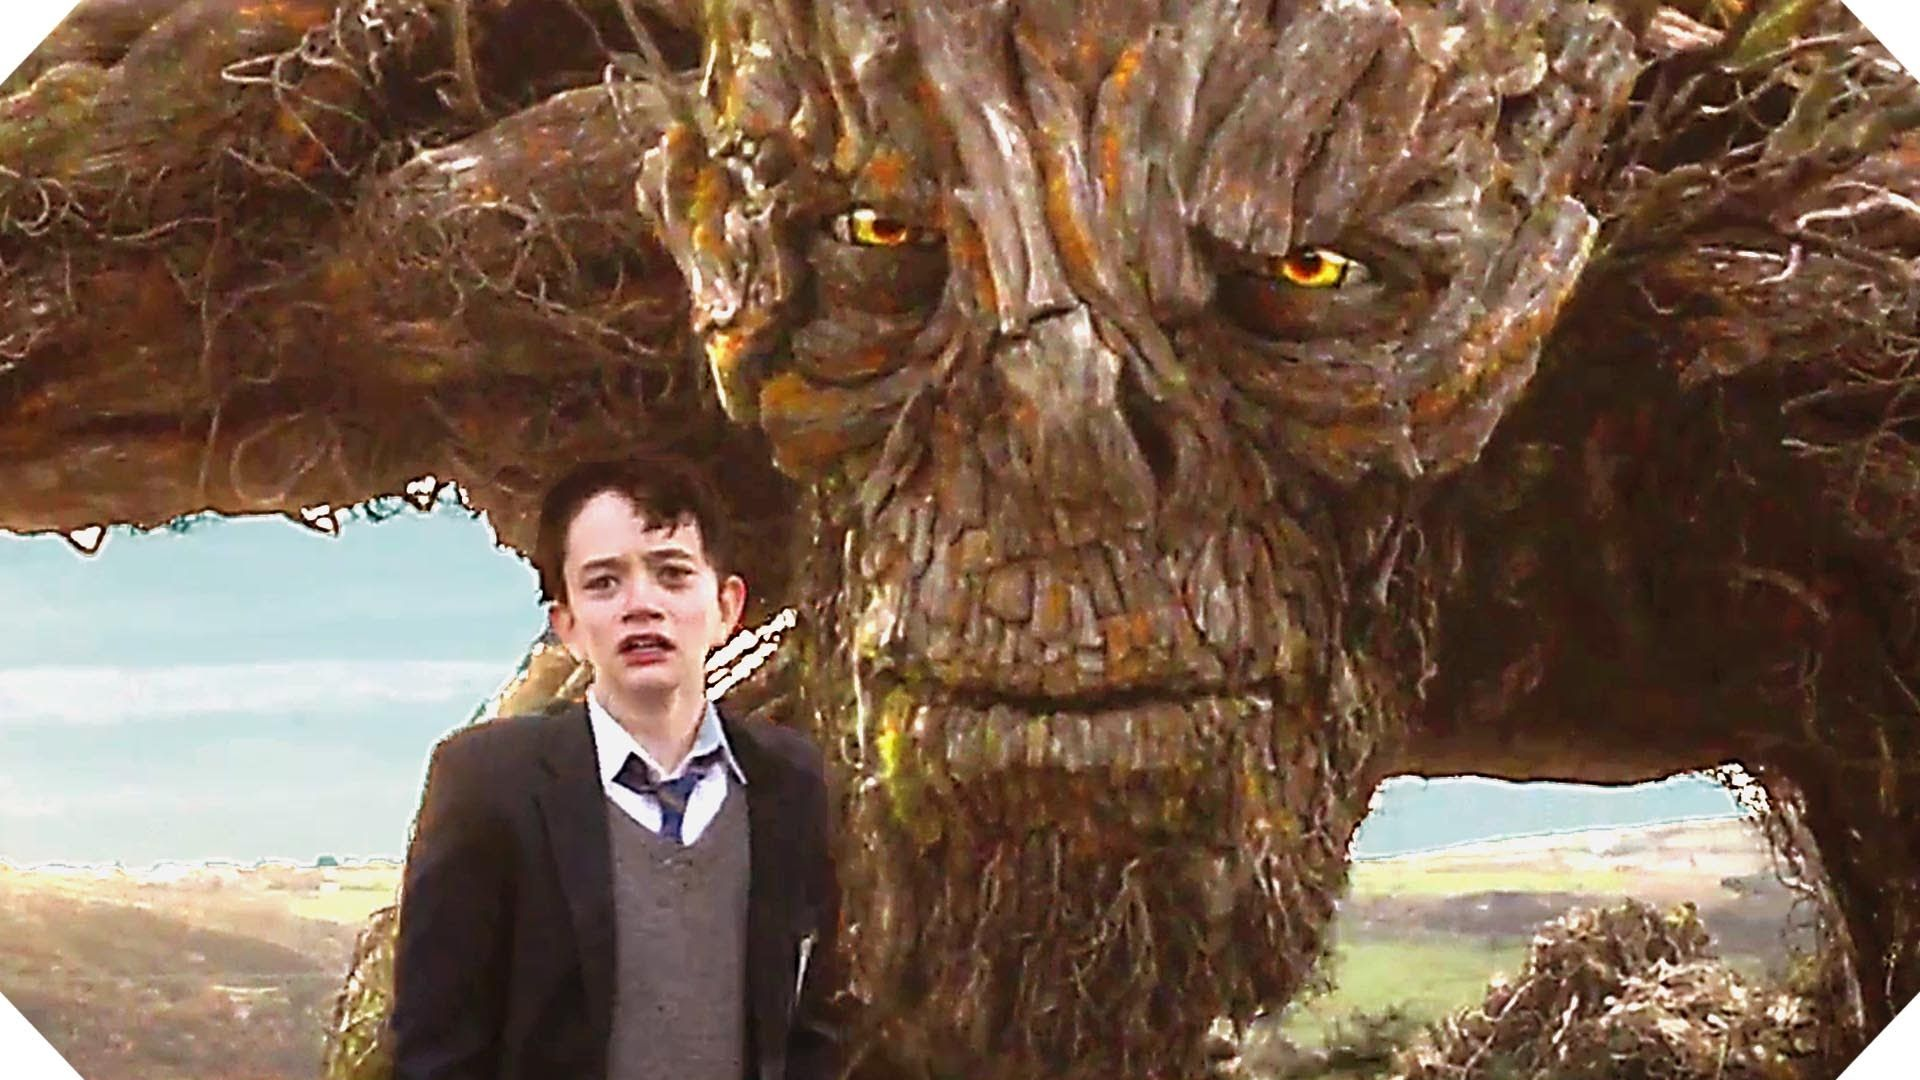 Liam Neeson actually plays two roles in A Monster Calls